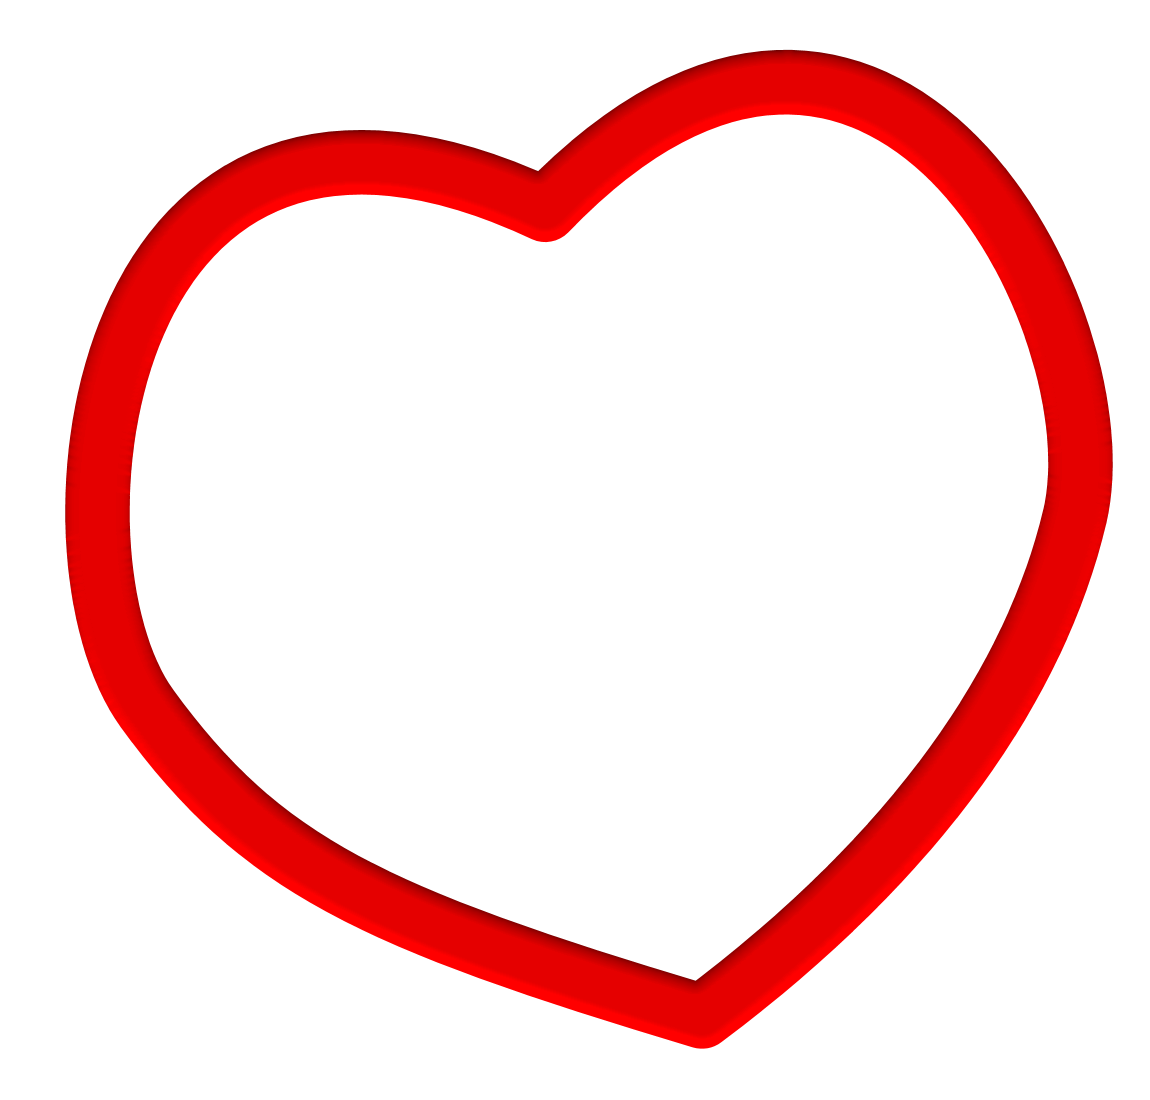 Heart clipart transparent background. Frame png pictures free